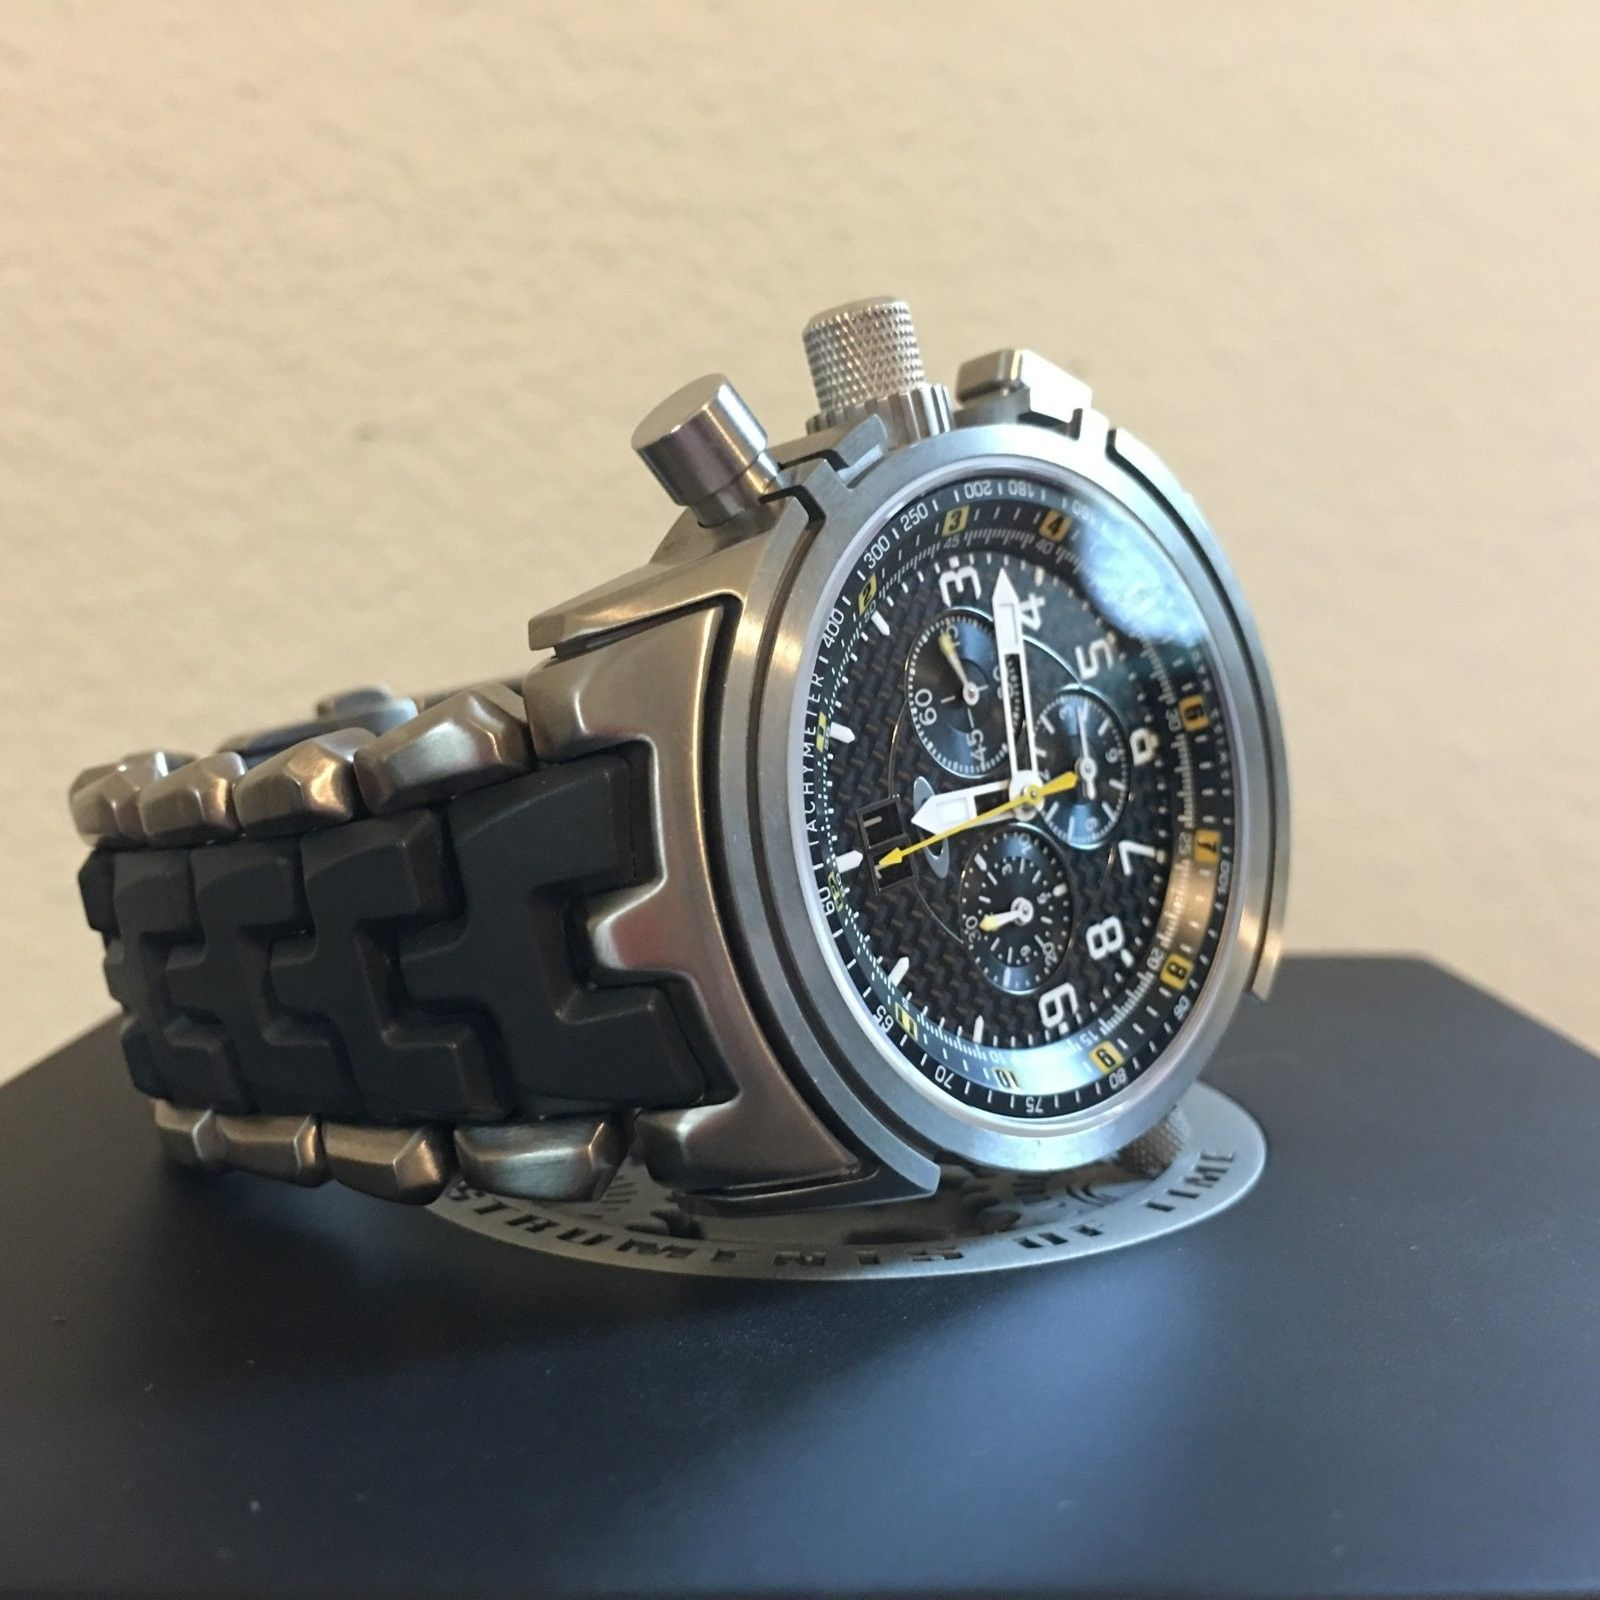 12-Gauge Special Edition Carbon Fiber/Yellow Dial (Free Watch Vault!) - IMG_0131.JPG